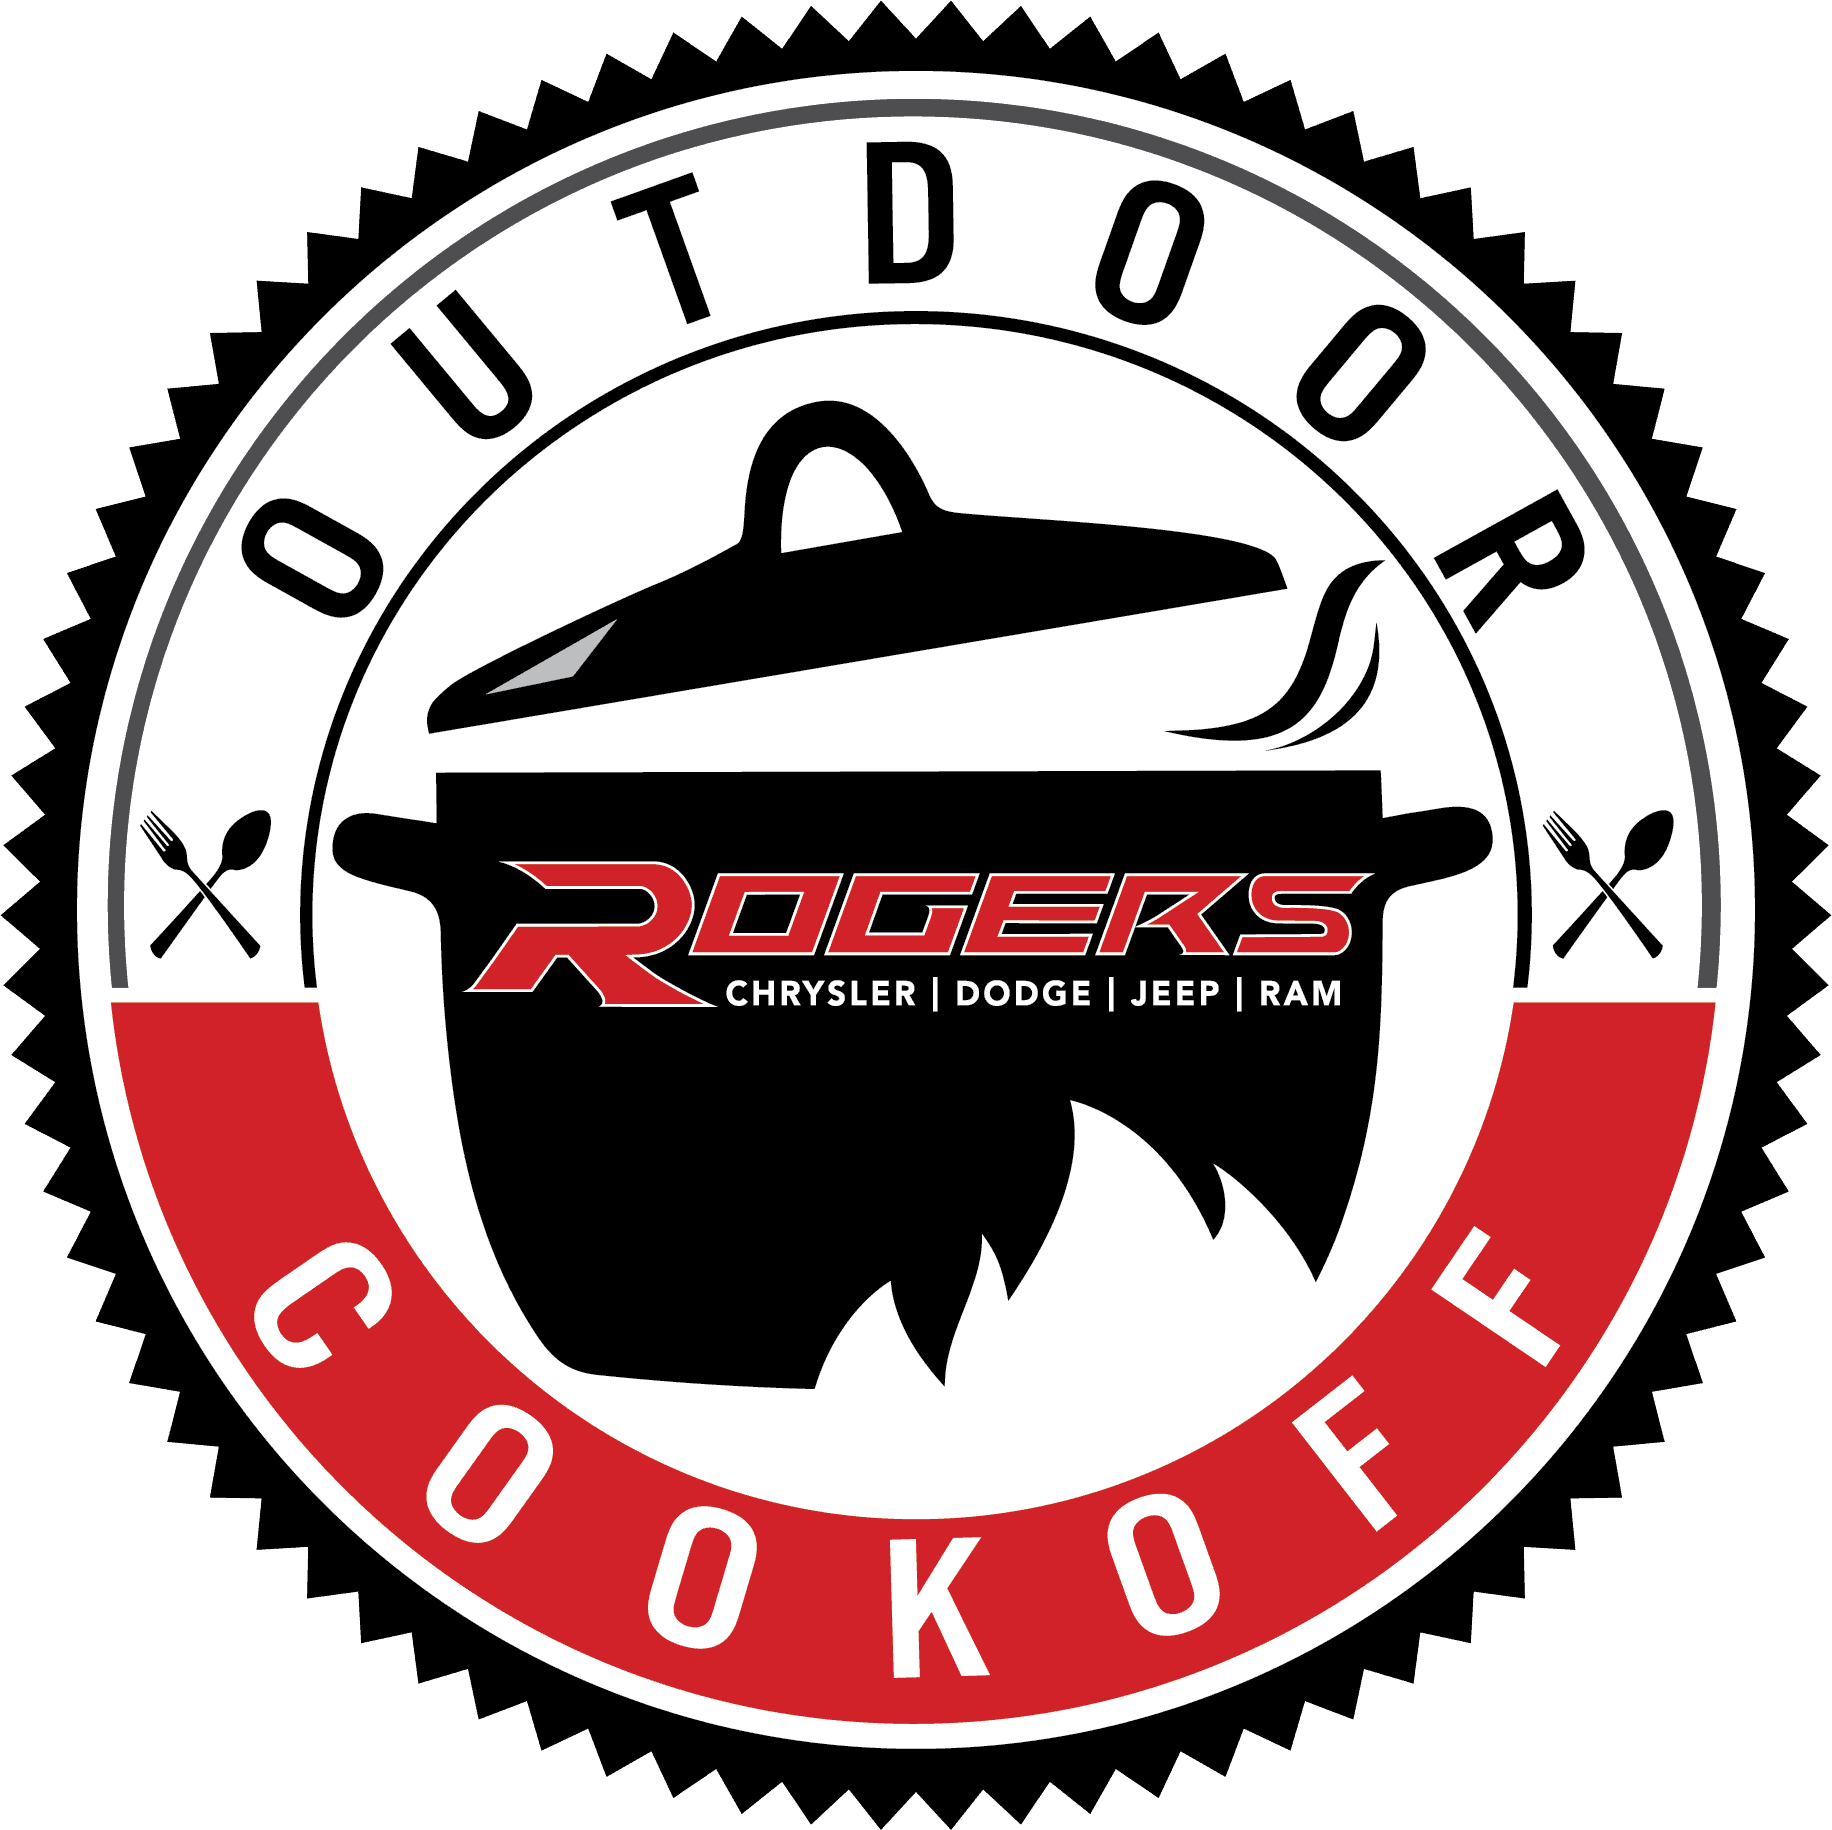 1021RD_fall_cookoff_logo (002)